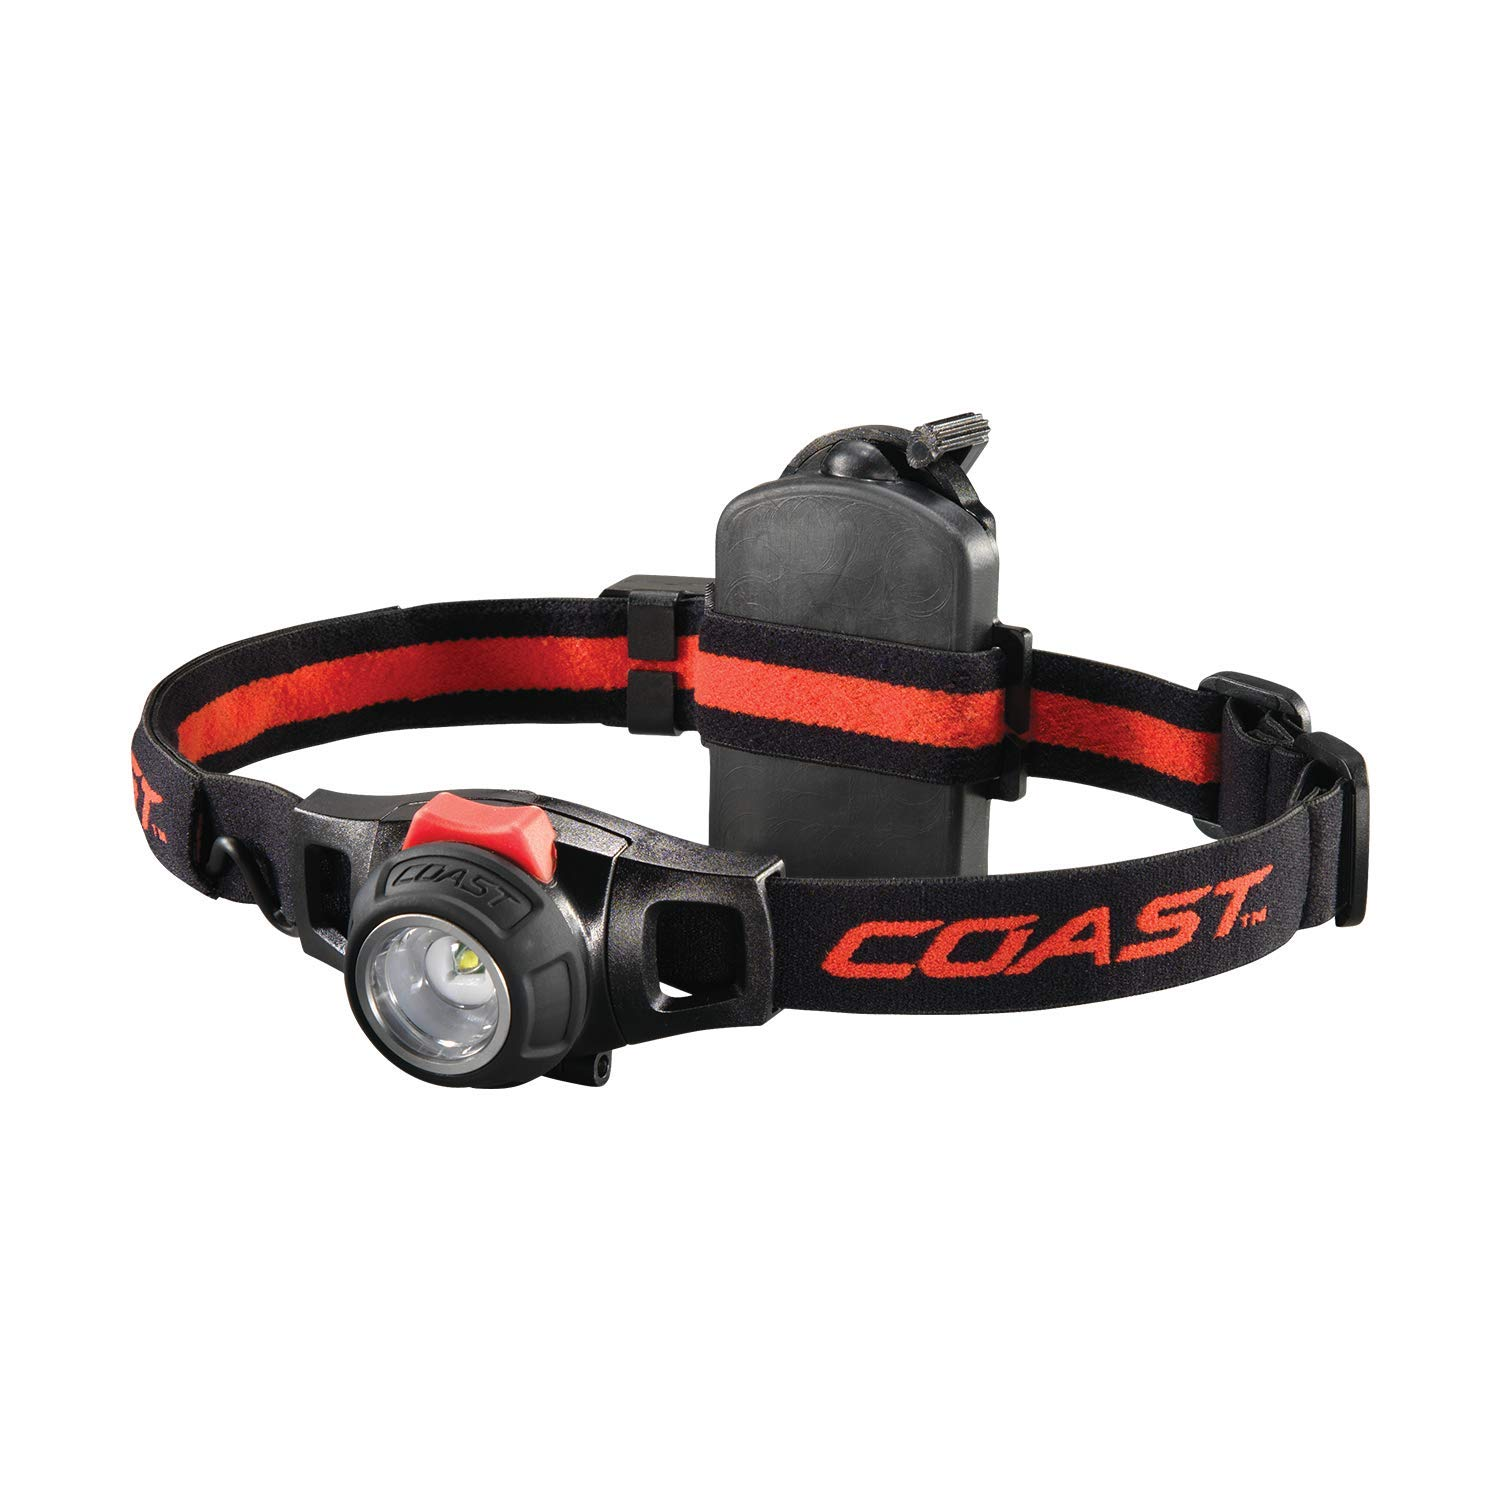 COAST HL7R 240 Lumen Rechargeable LED Headlamp with Twist Focus by Coast